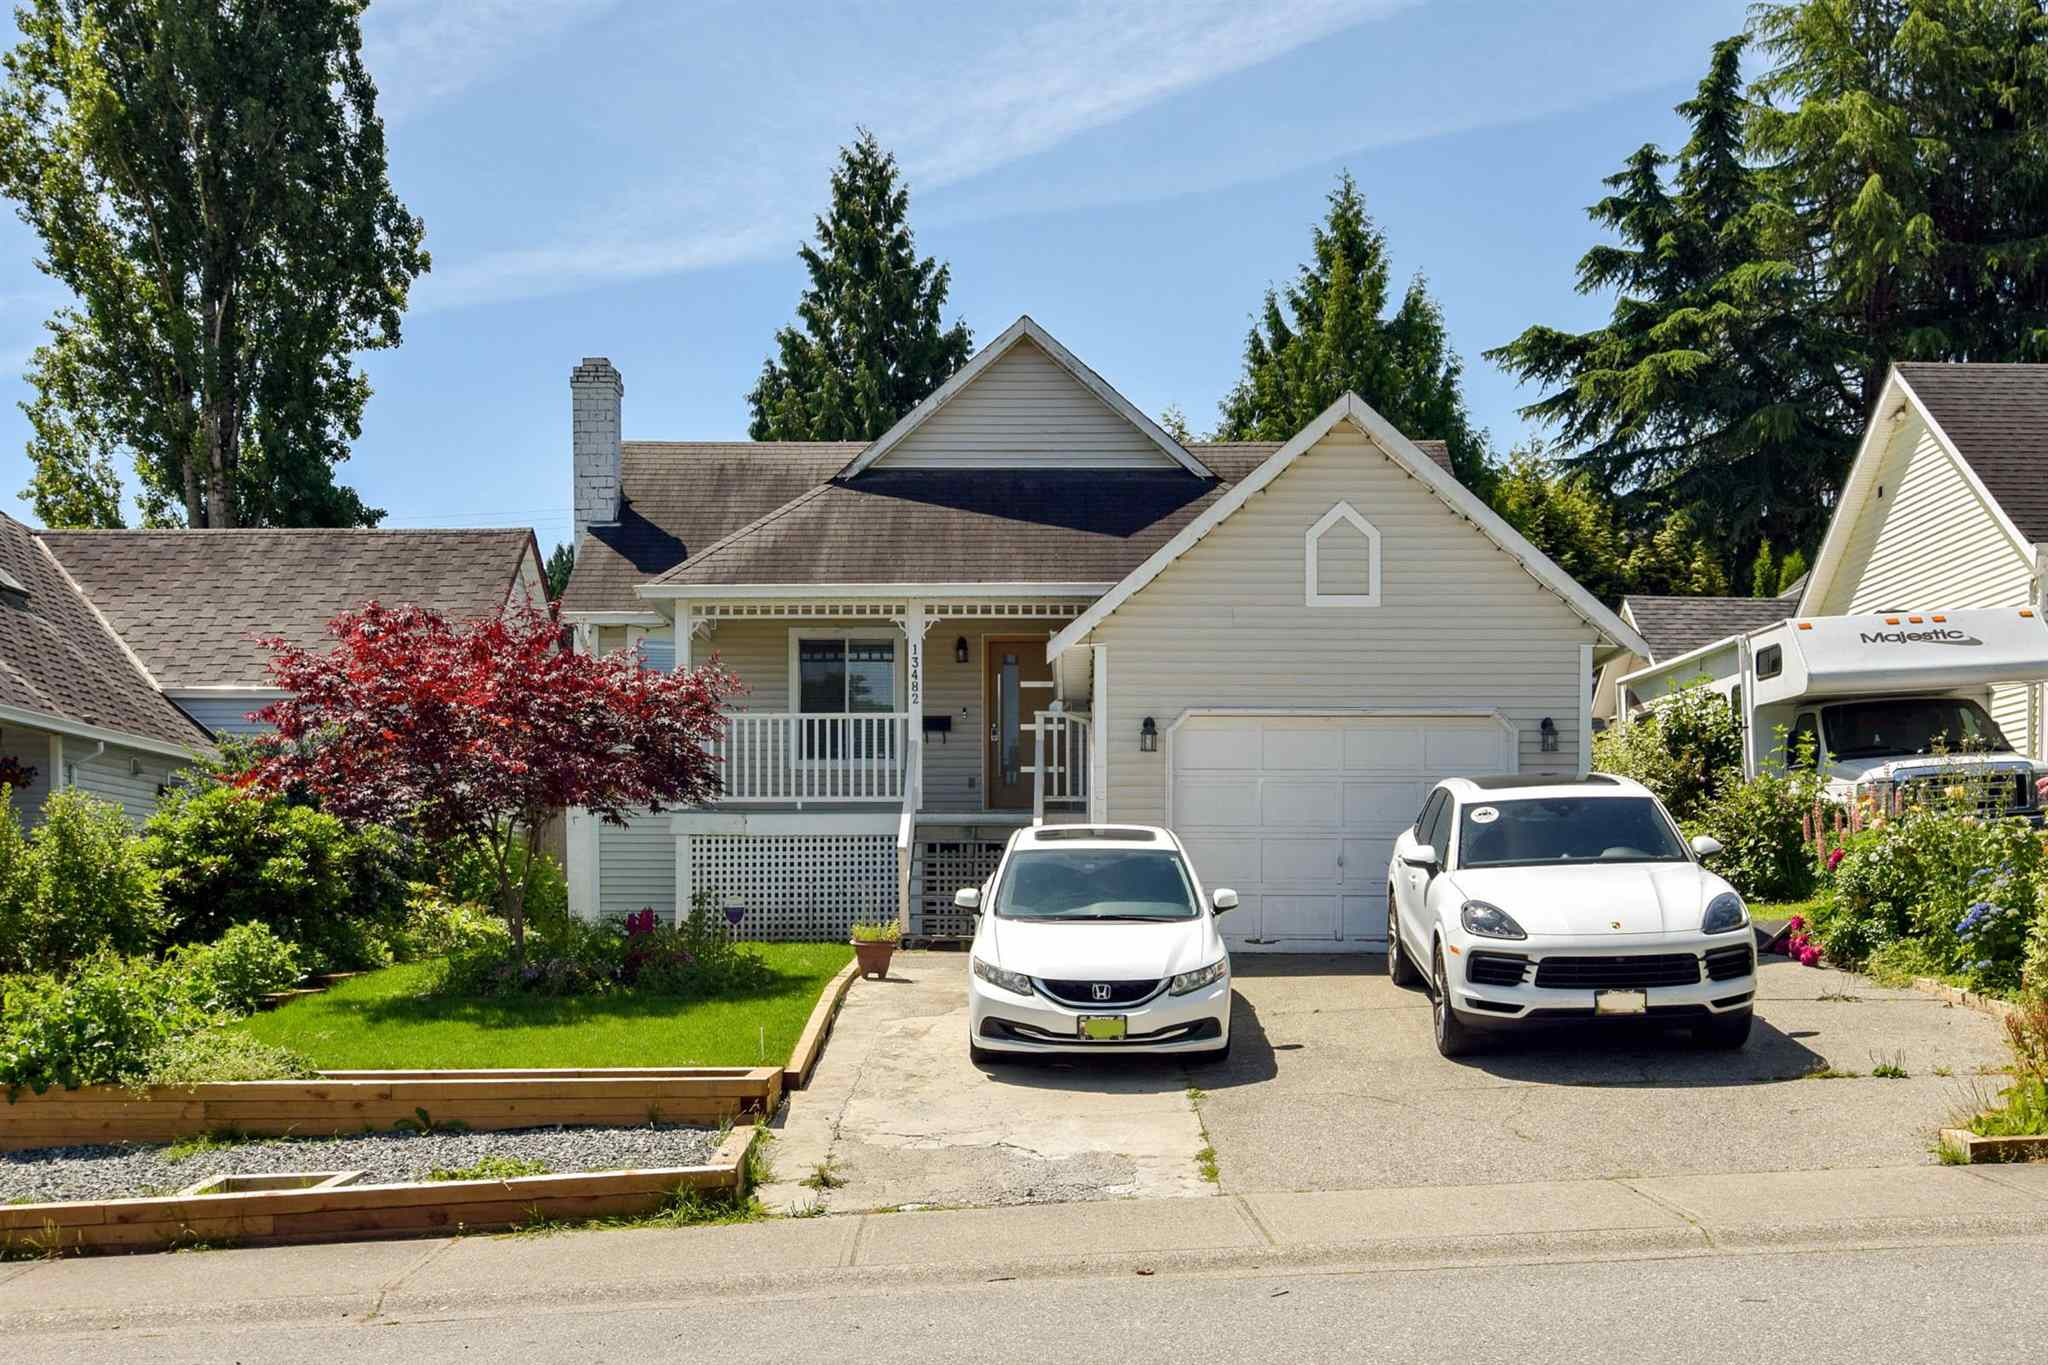 13482 62A AVENUE - Panorama Ridge House/Single Family for sale, 5 Bedrooms (R2604476) - #1